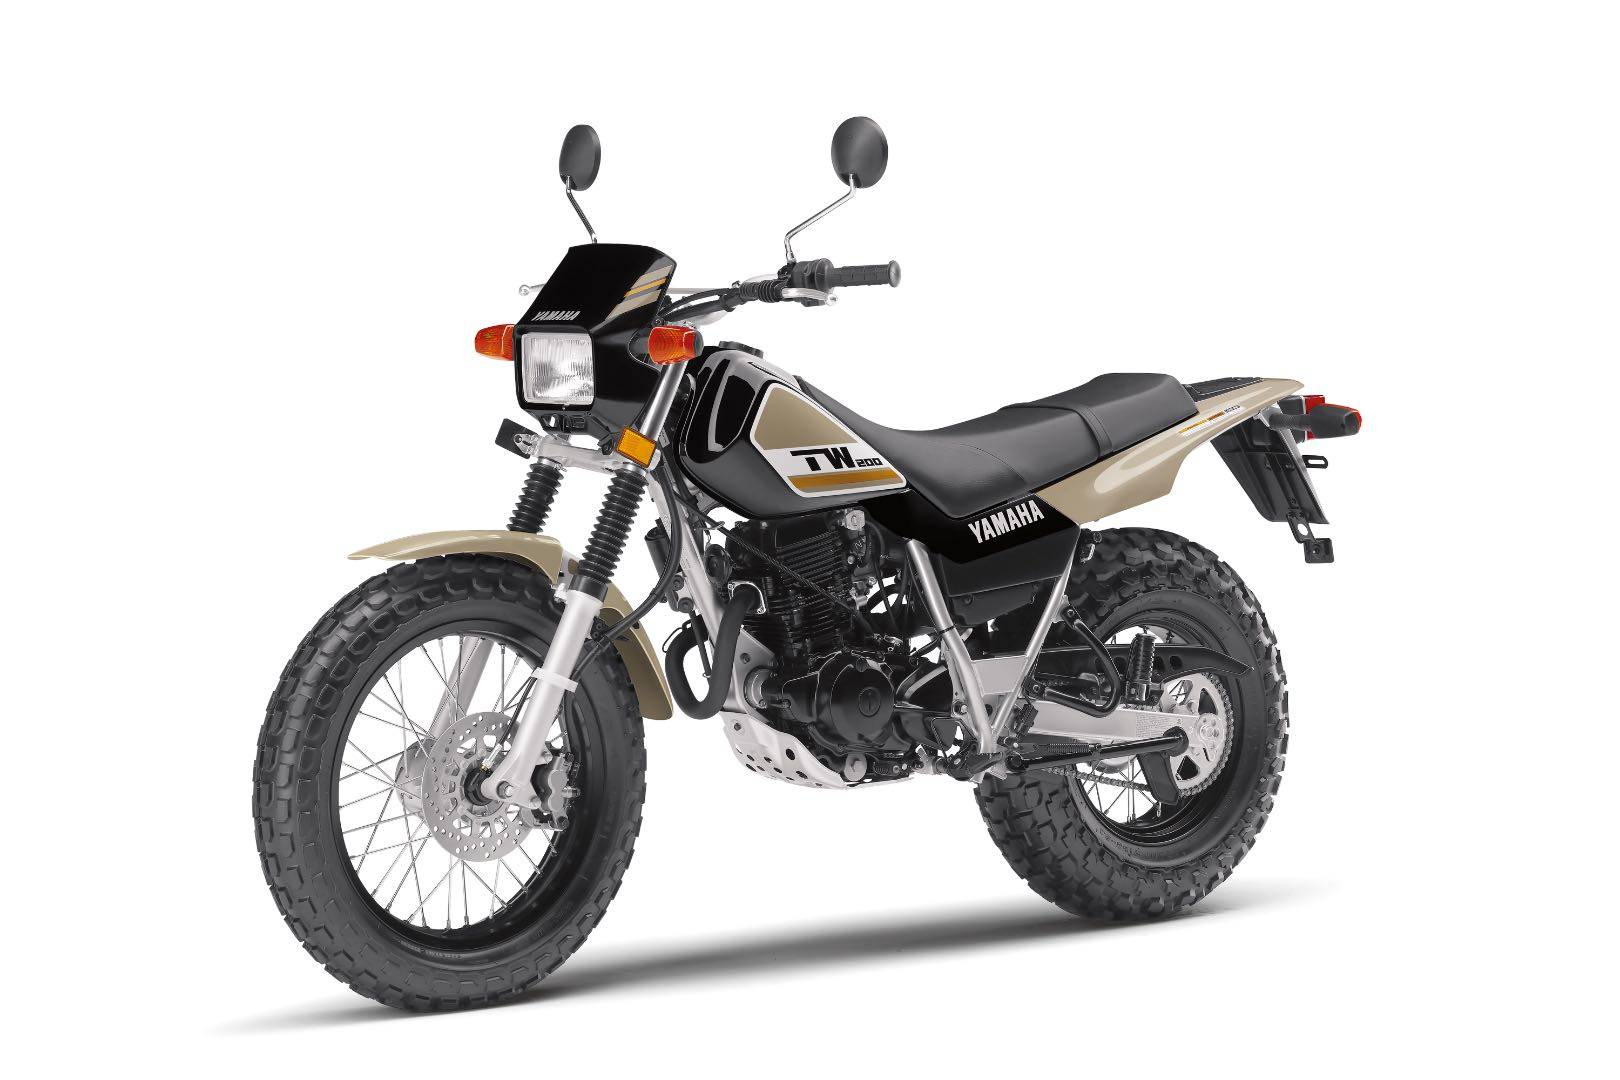 2018 Yamaha TW200 Buyer's Guide | Specs & Price